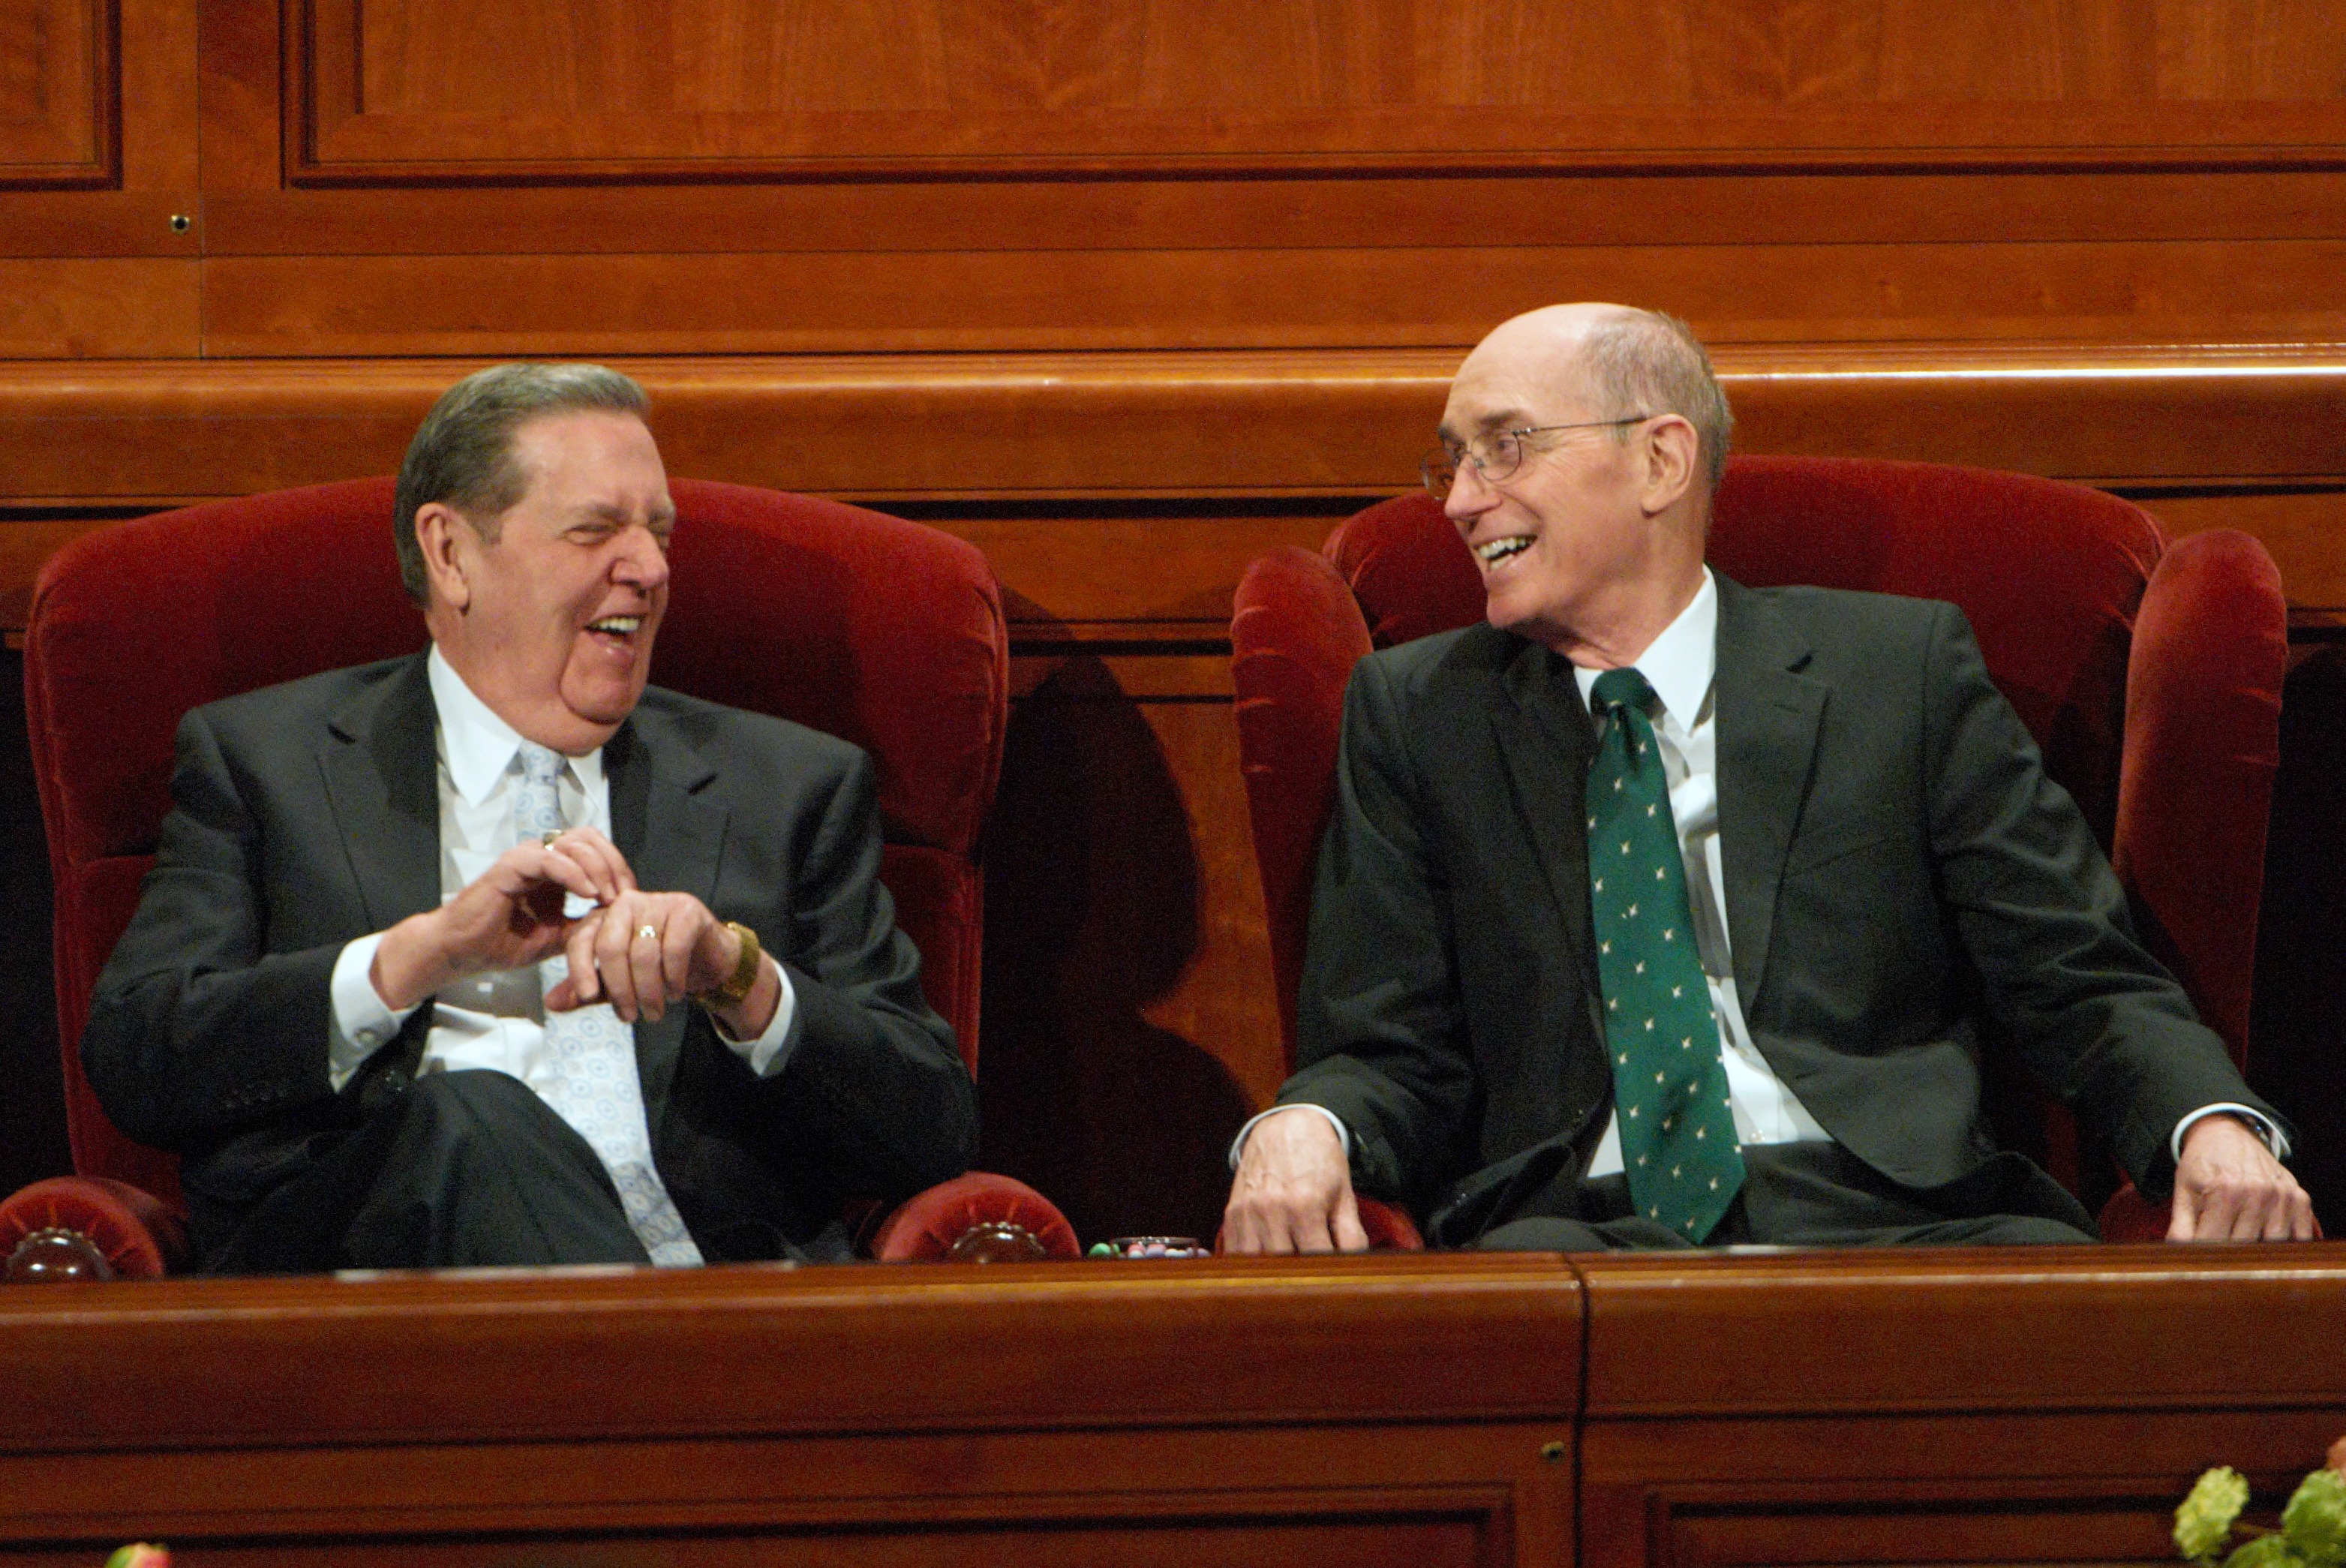 Elder Jeffery R. Holland of the Quorum of the Twelve and President Henry B. Eyring attended the 183rd Semiannual General Conference. Photo by Maddi Dayton.